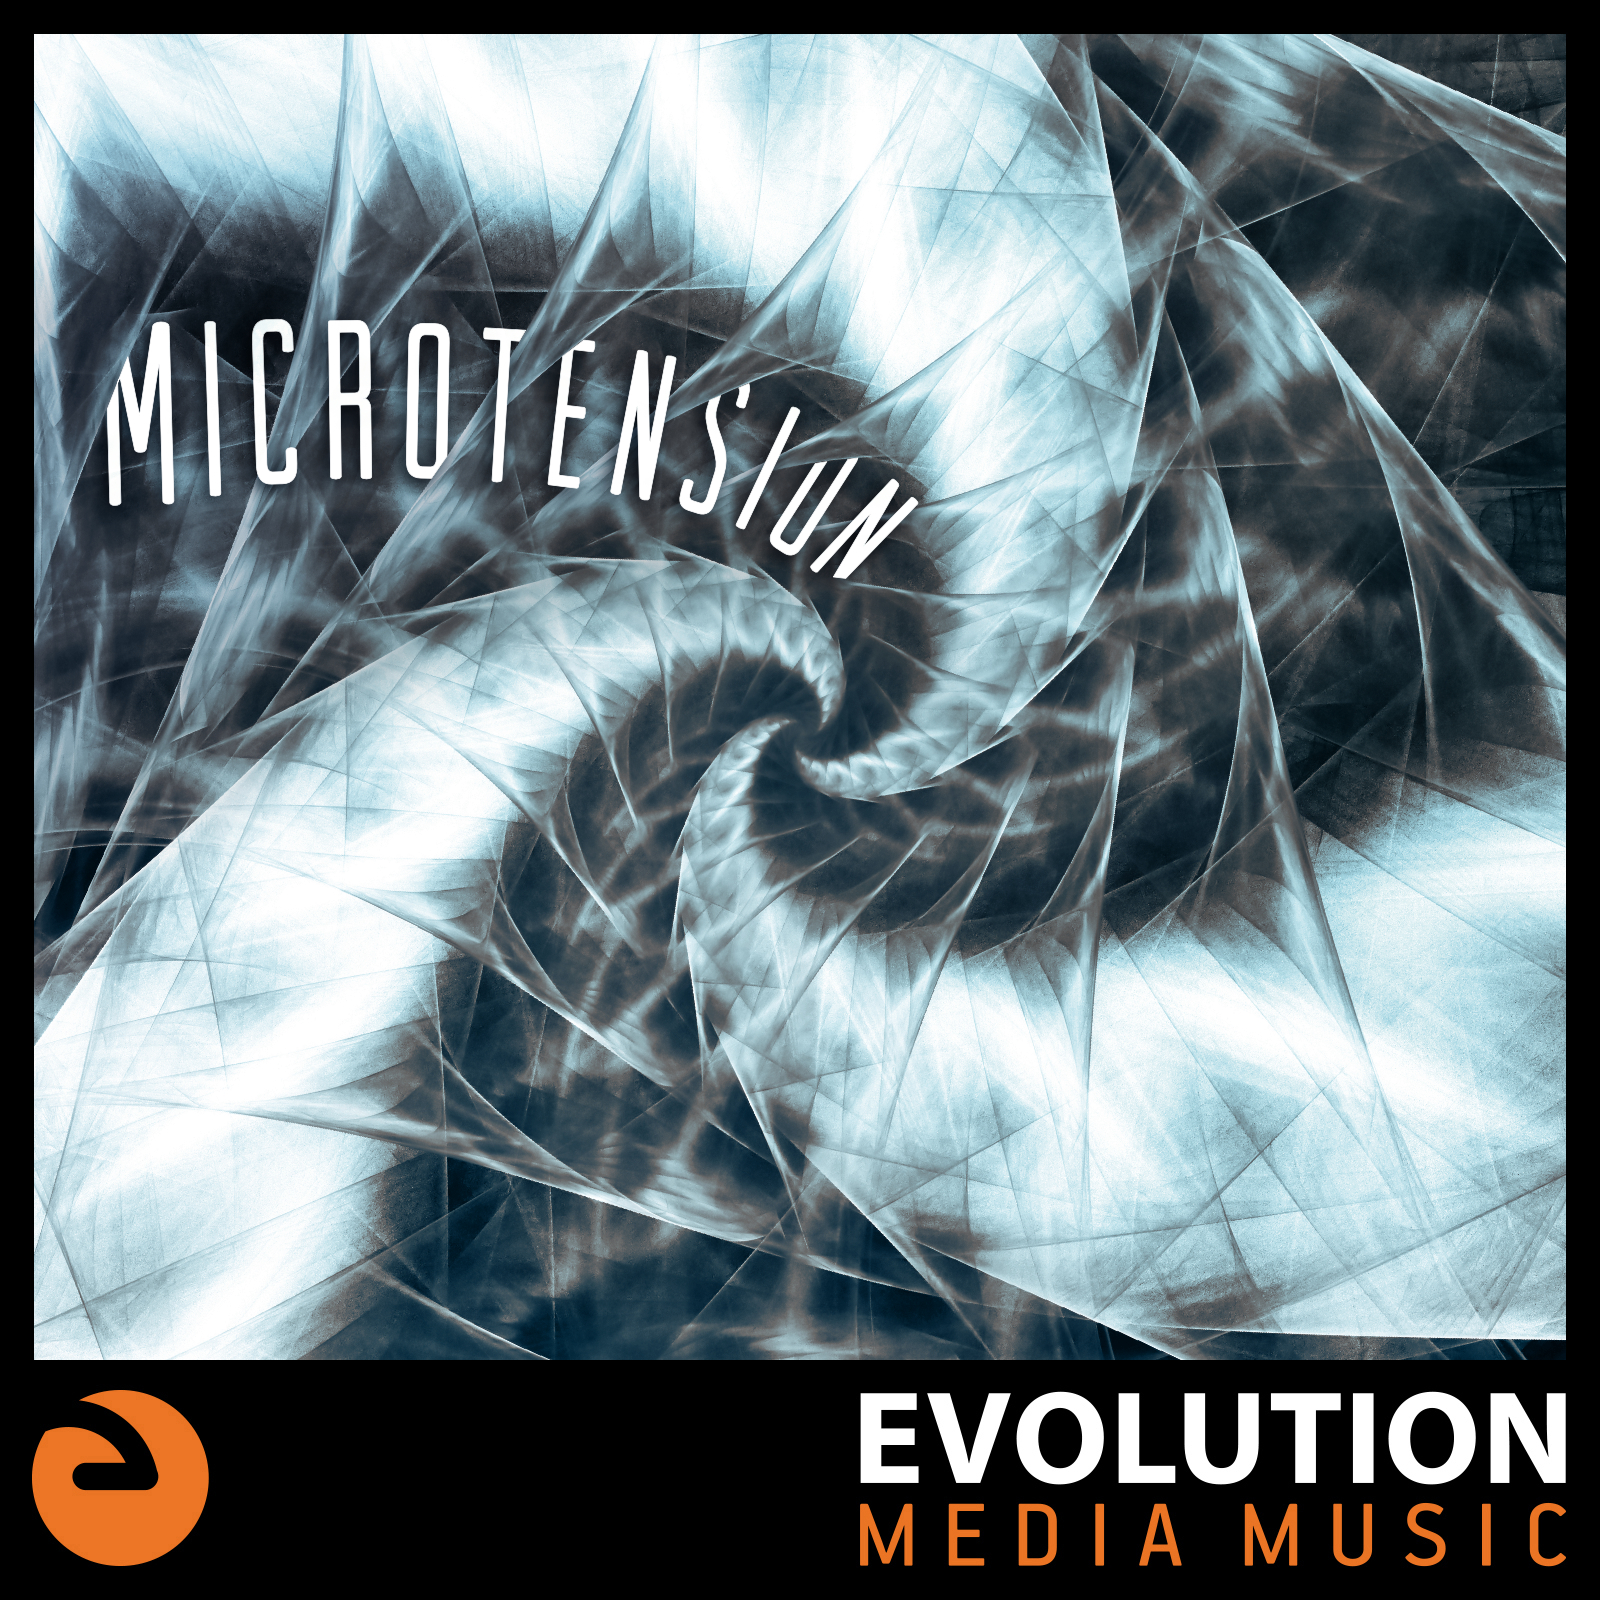 Microtension